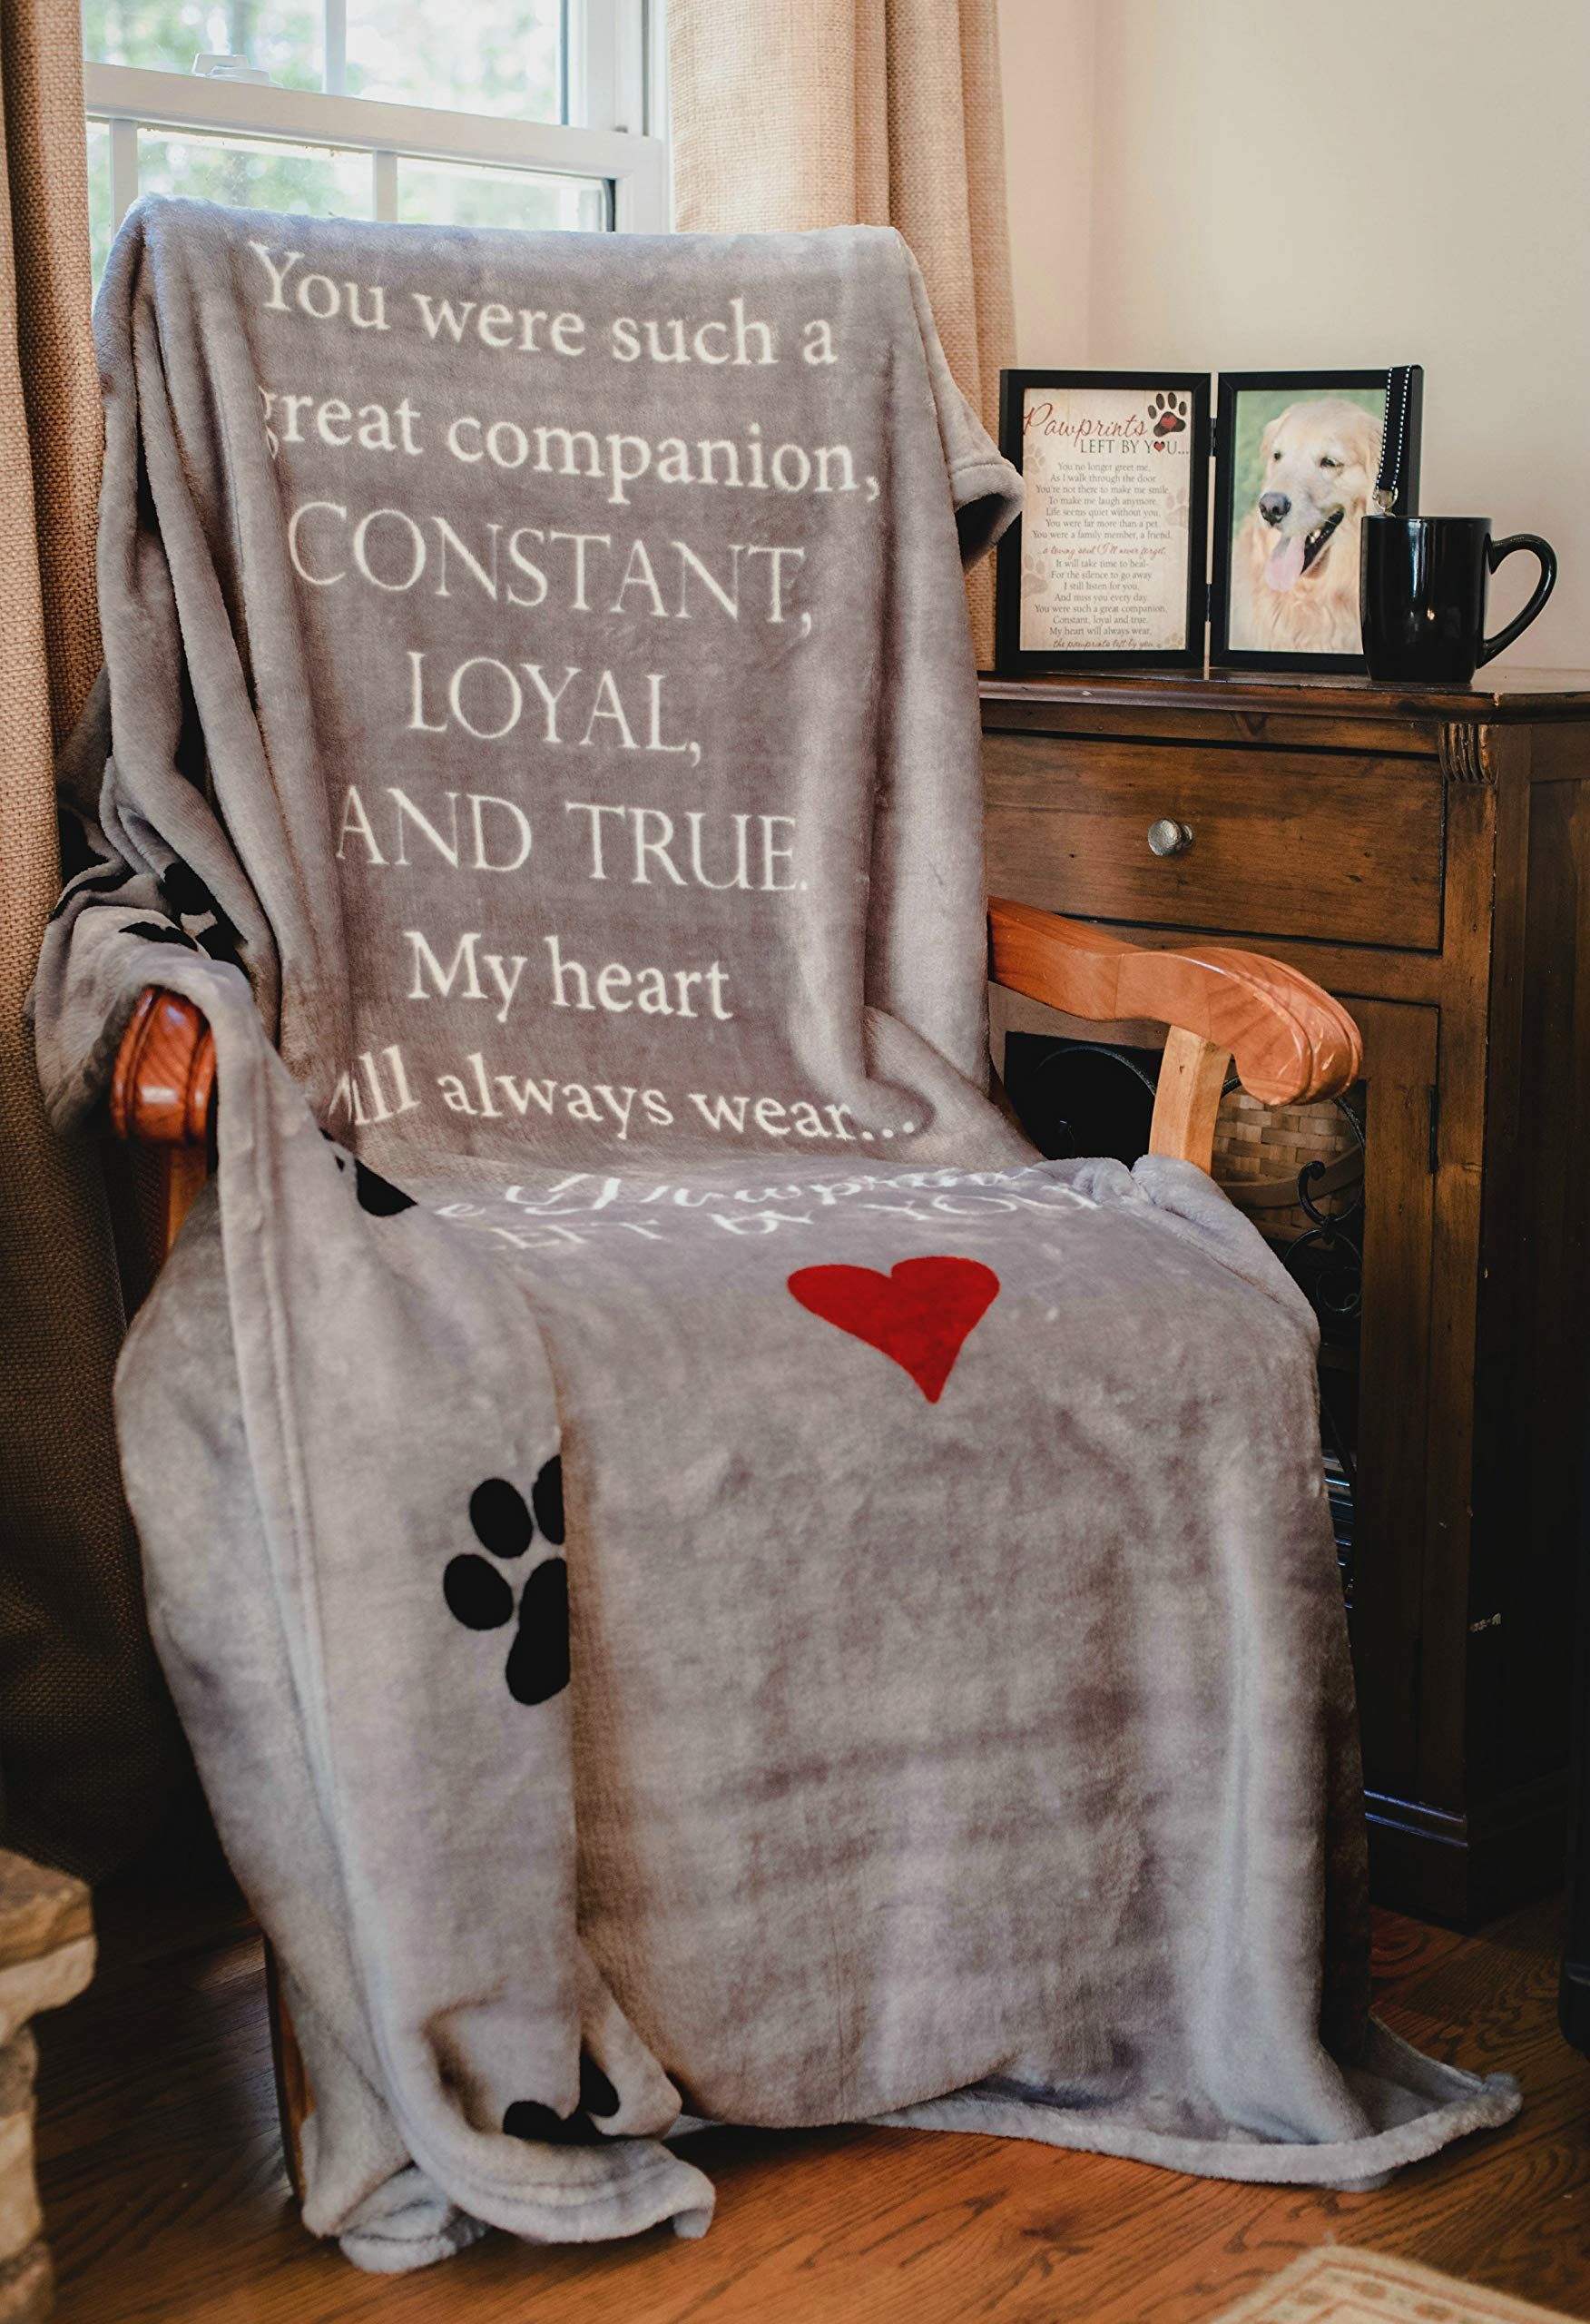 Pawprints Left by You Pet Memorial Blanket with Heartfelt Sentiment - Comforting Pet Loss/Pet Bereavement Gift (Non Personalized) 6